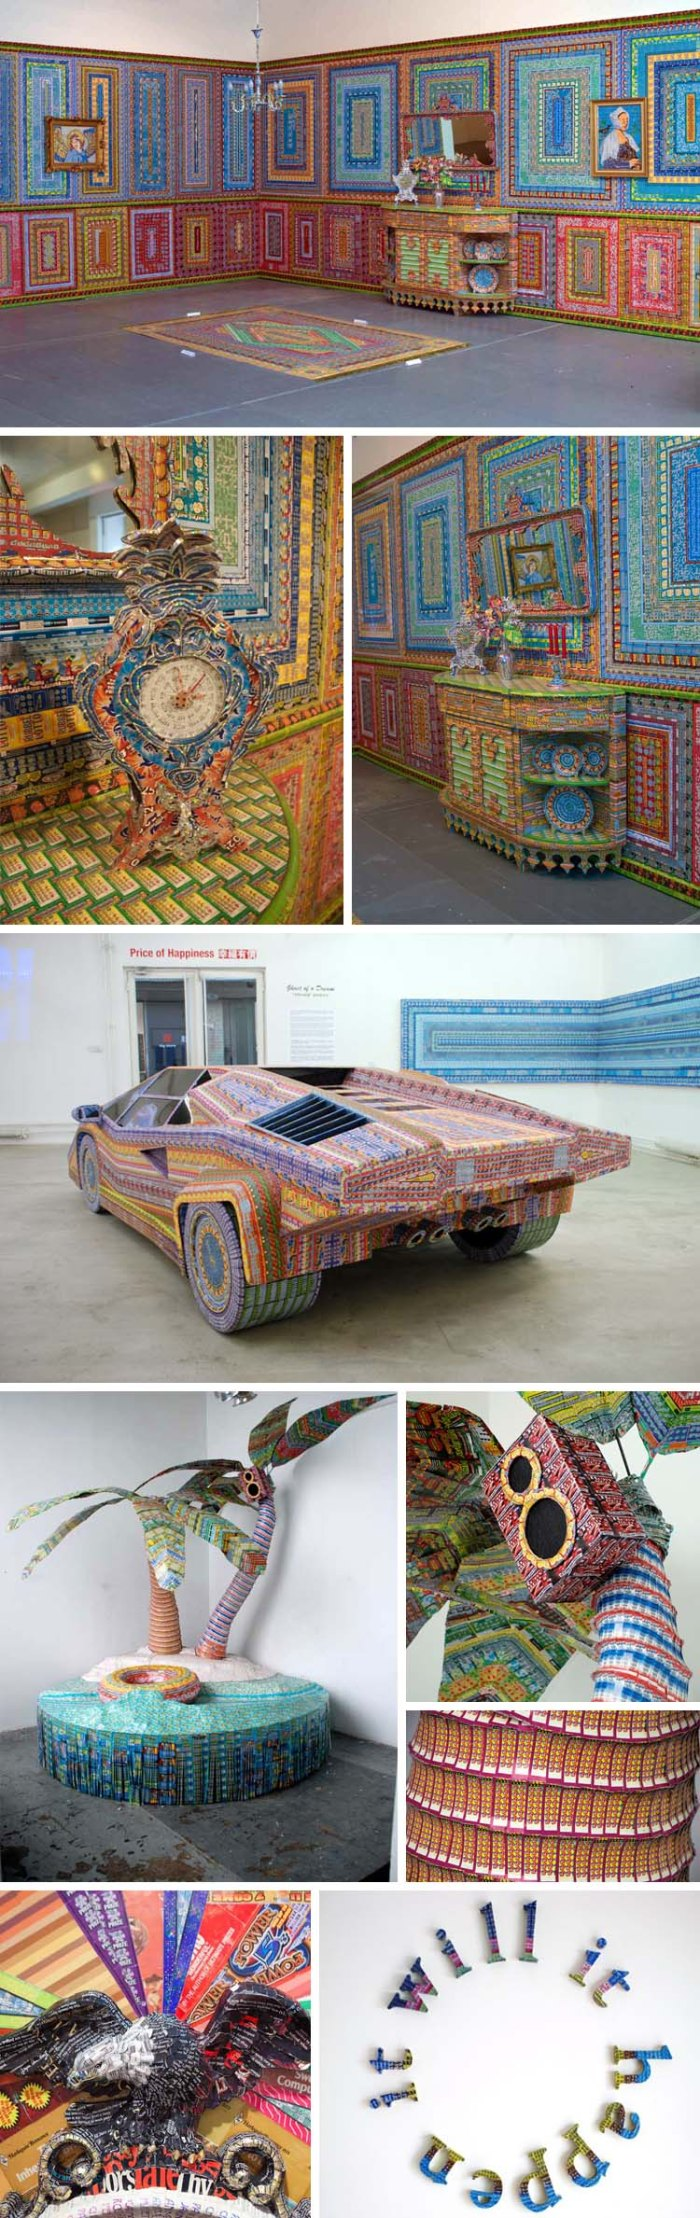 ghost of a dream, collages made of lottery tickets and romanc novel covers, cool art, art installations